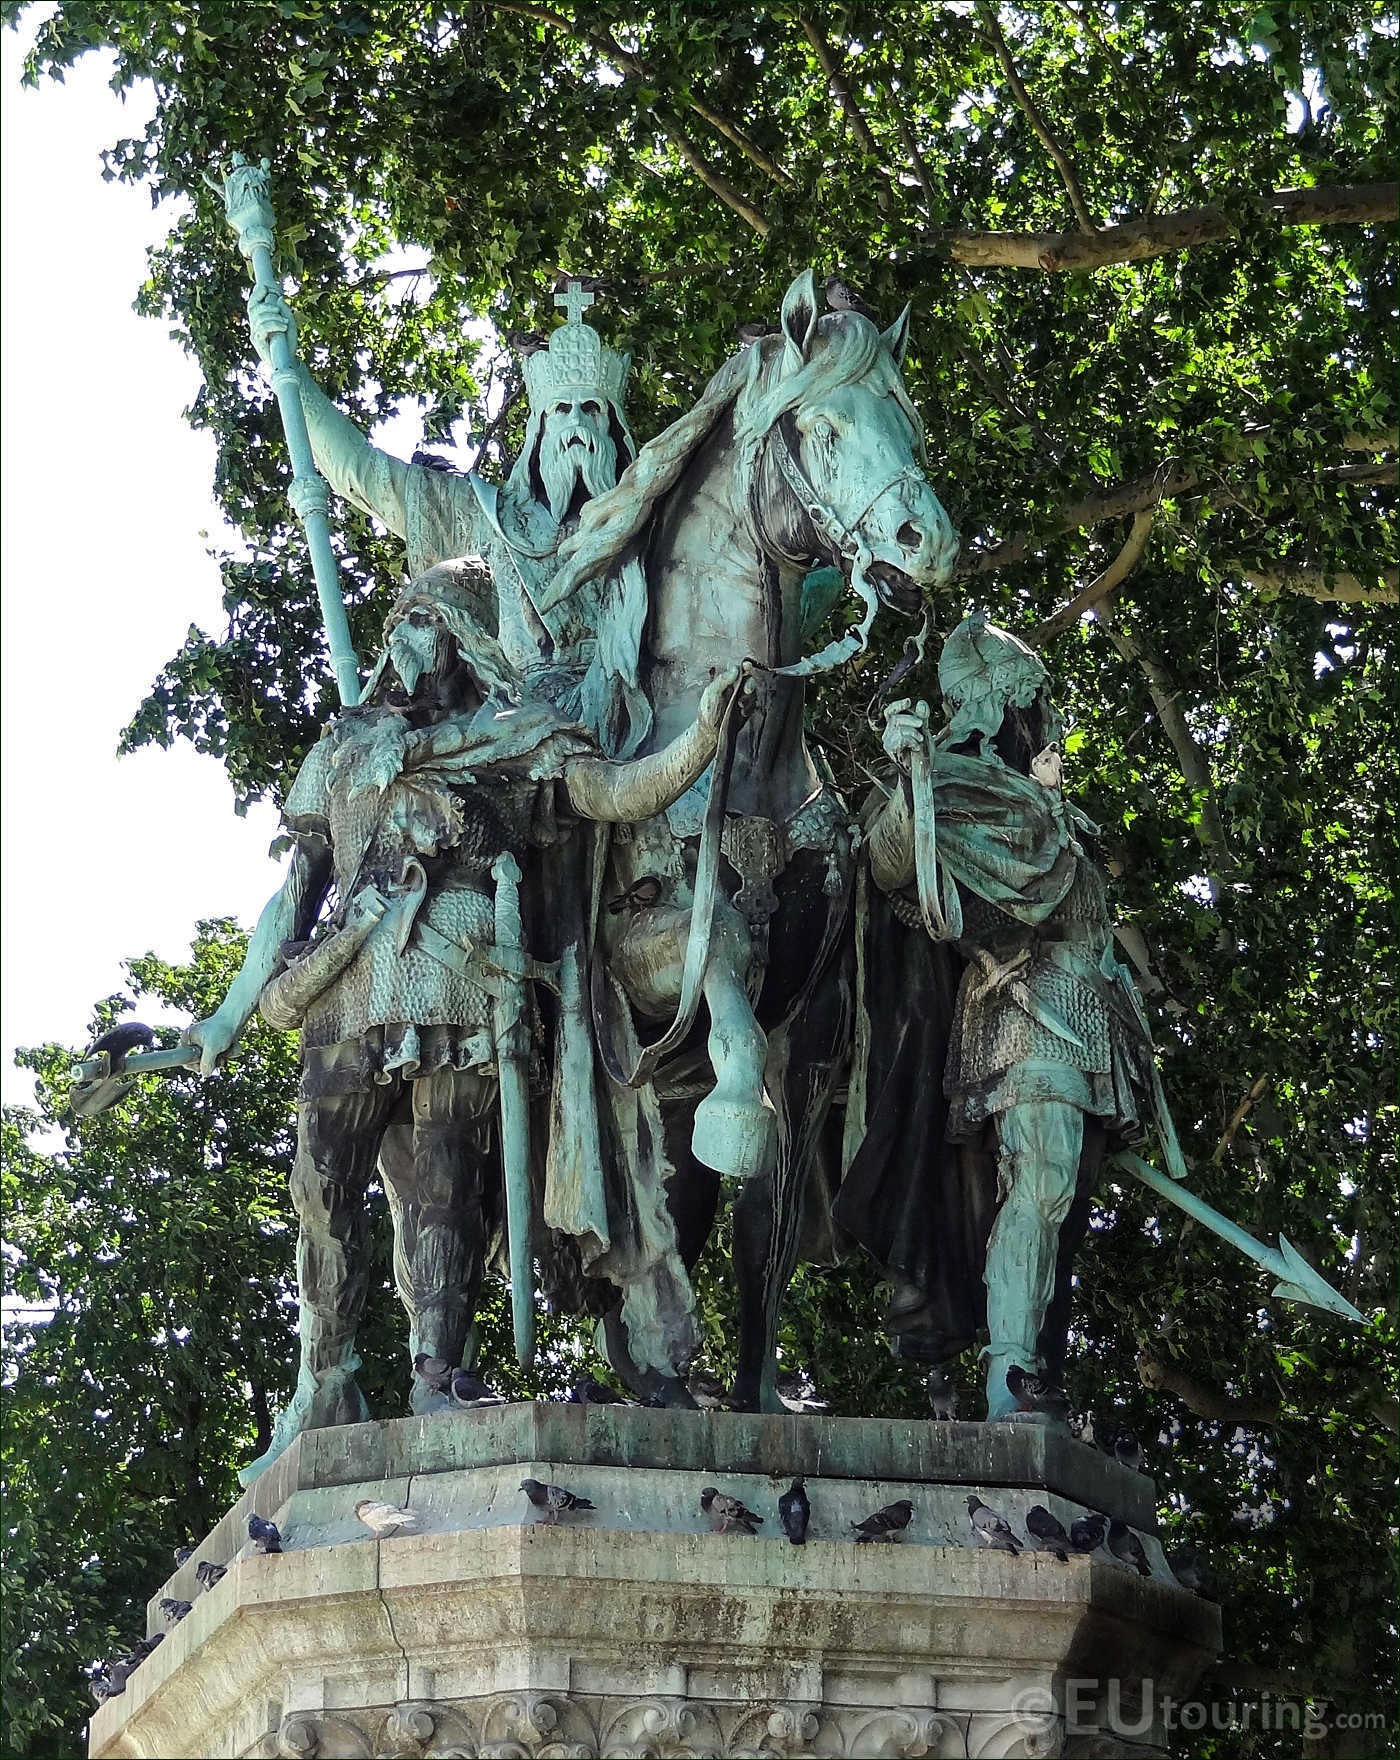 Hd Photos Of Paris Statues And Sculptures With Location Map